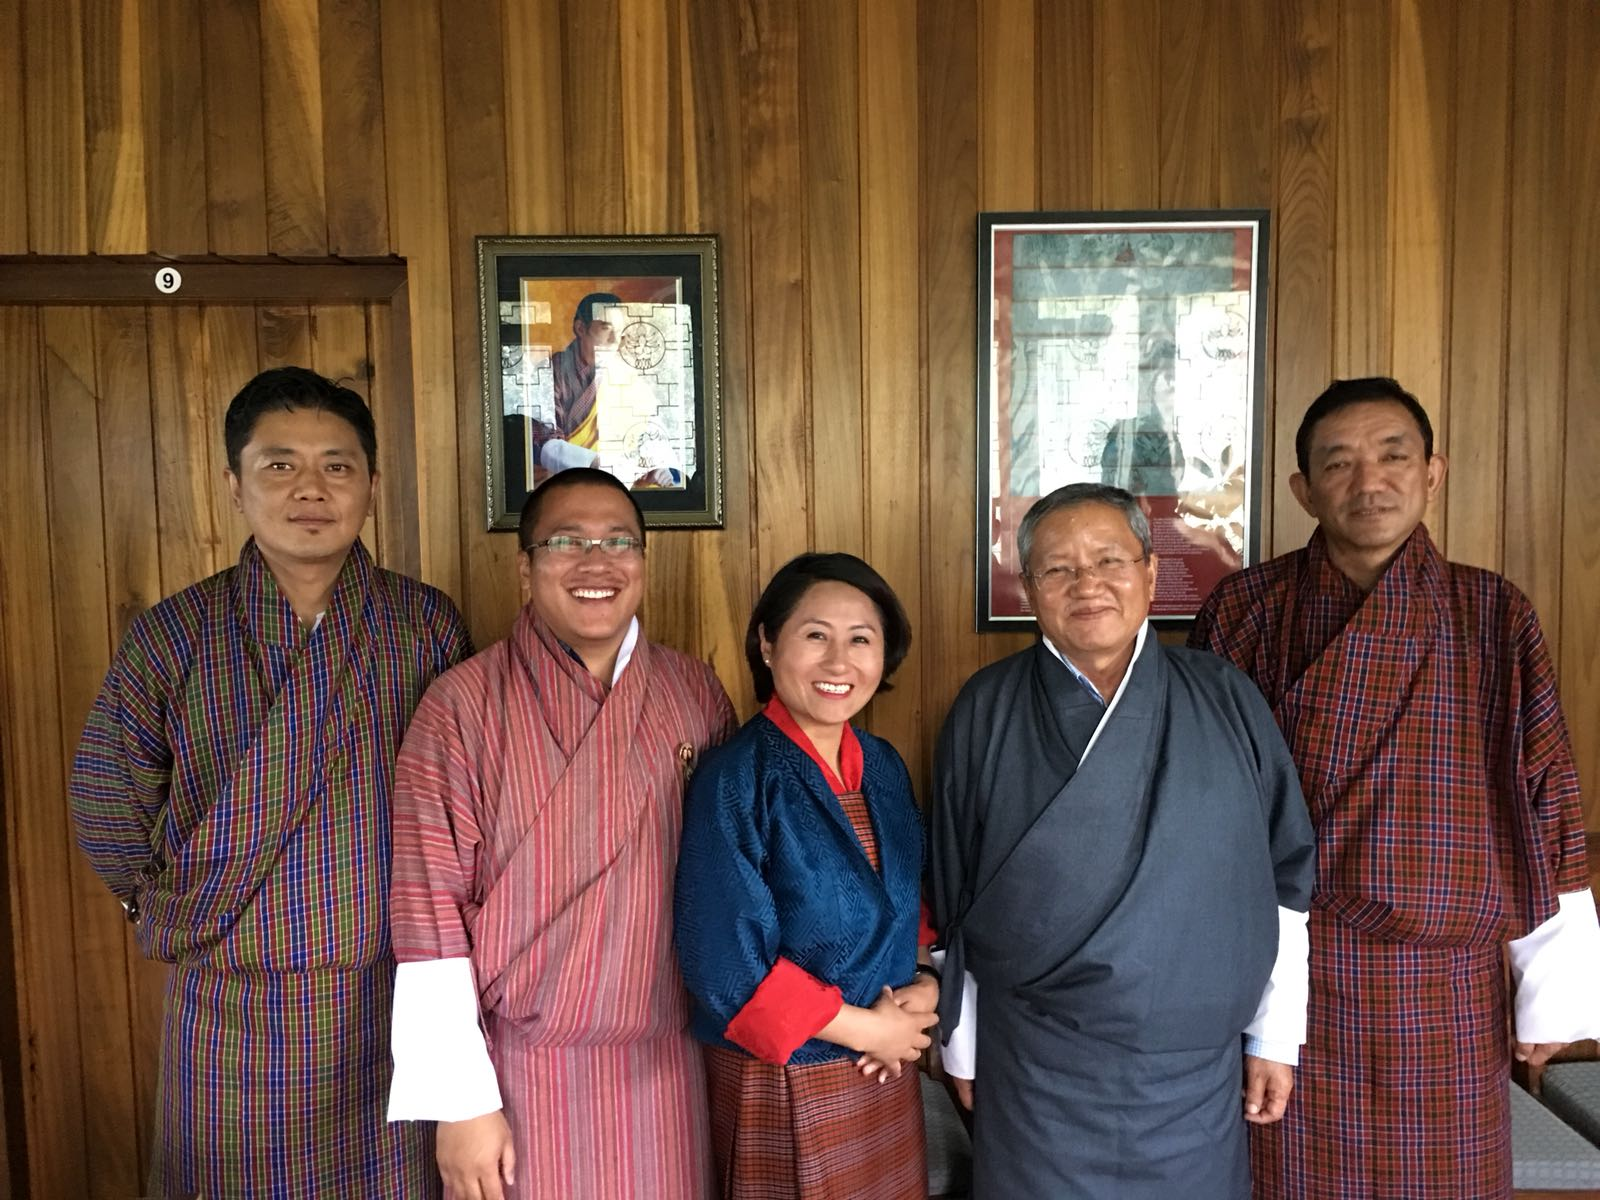 From left to right: Tashi Rabgyel, Dragyel Dorjee, Kunzang Wamgmo, Lyonpo Dr. Kinzang Dorji (President SSB) and Nado Dukpa